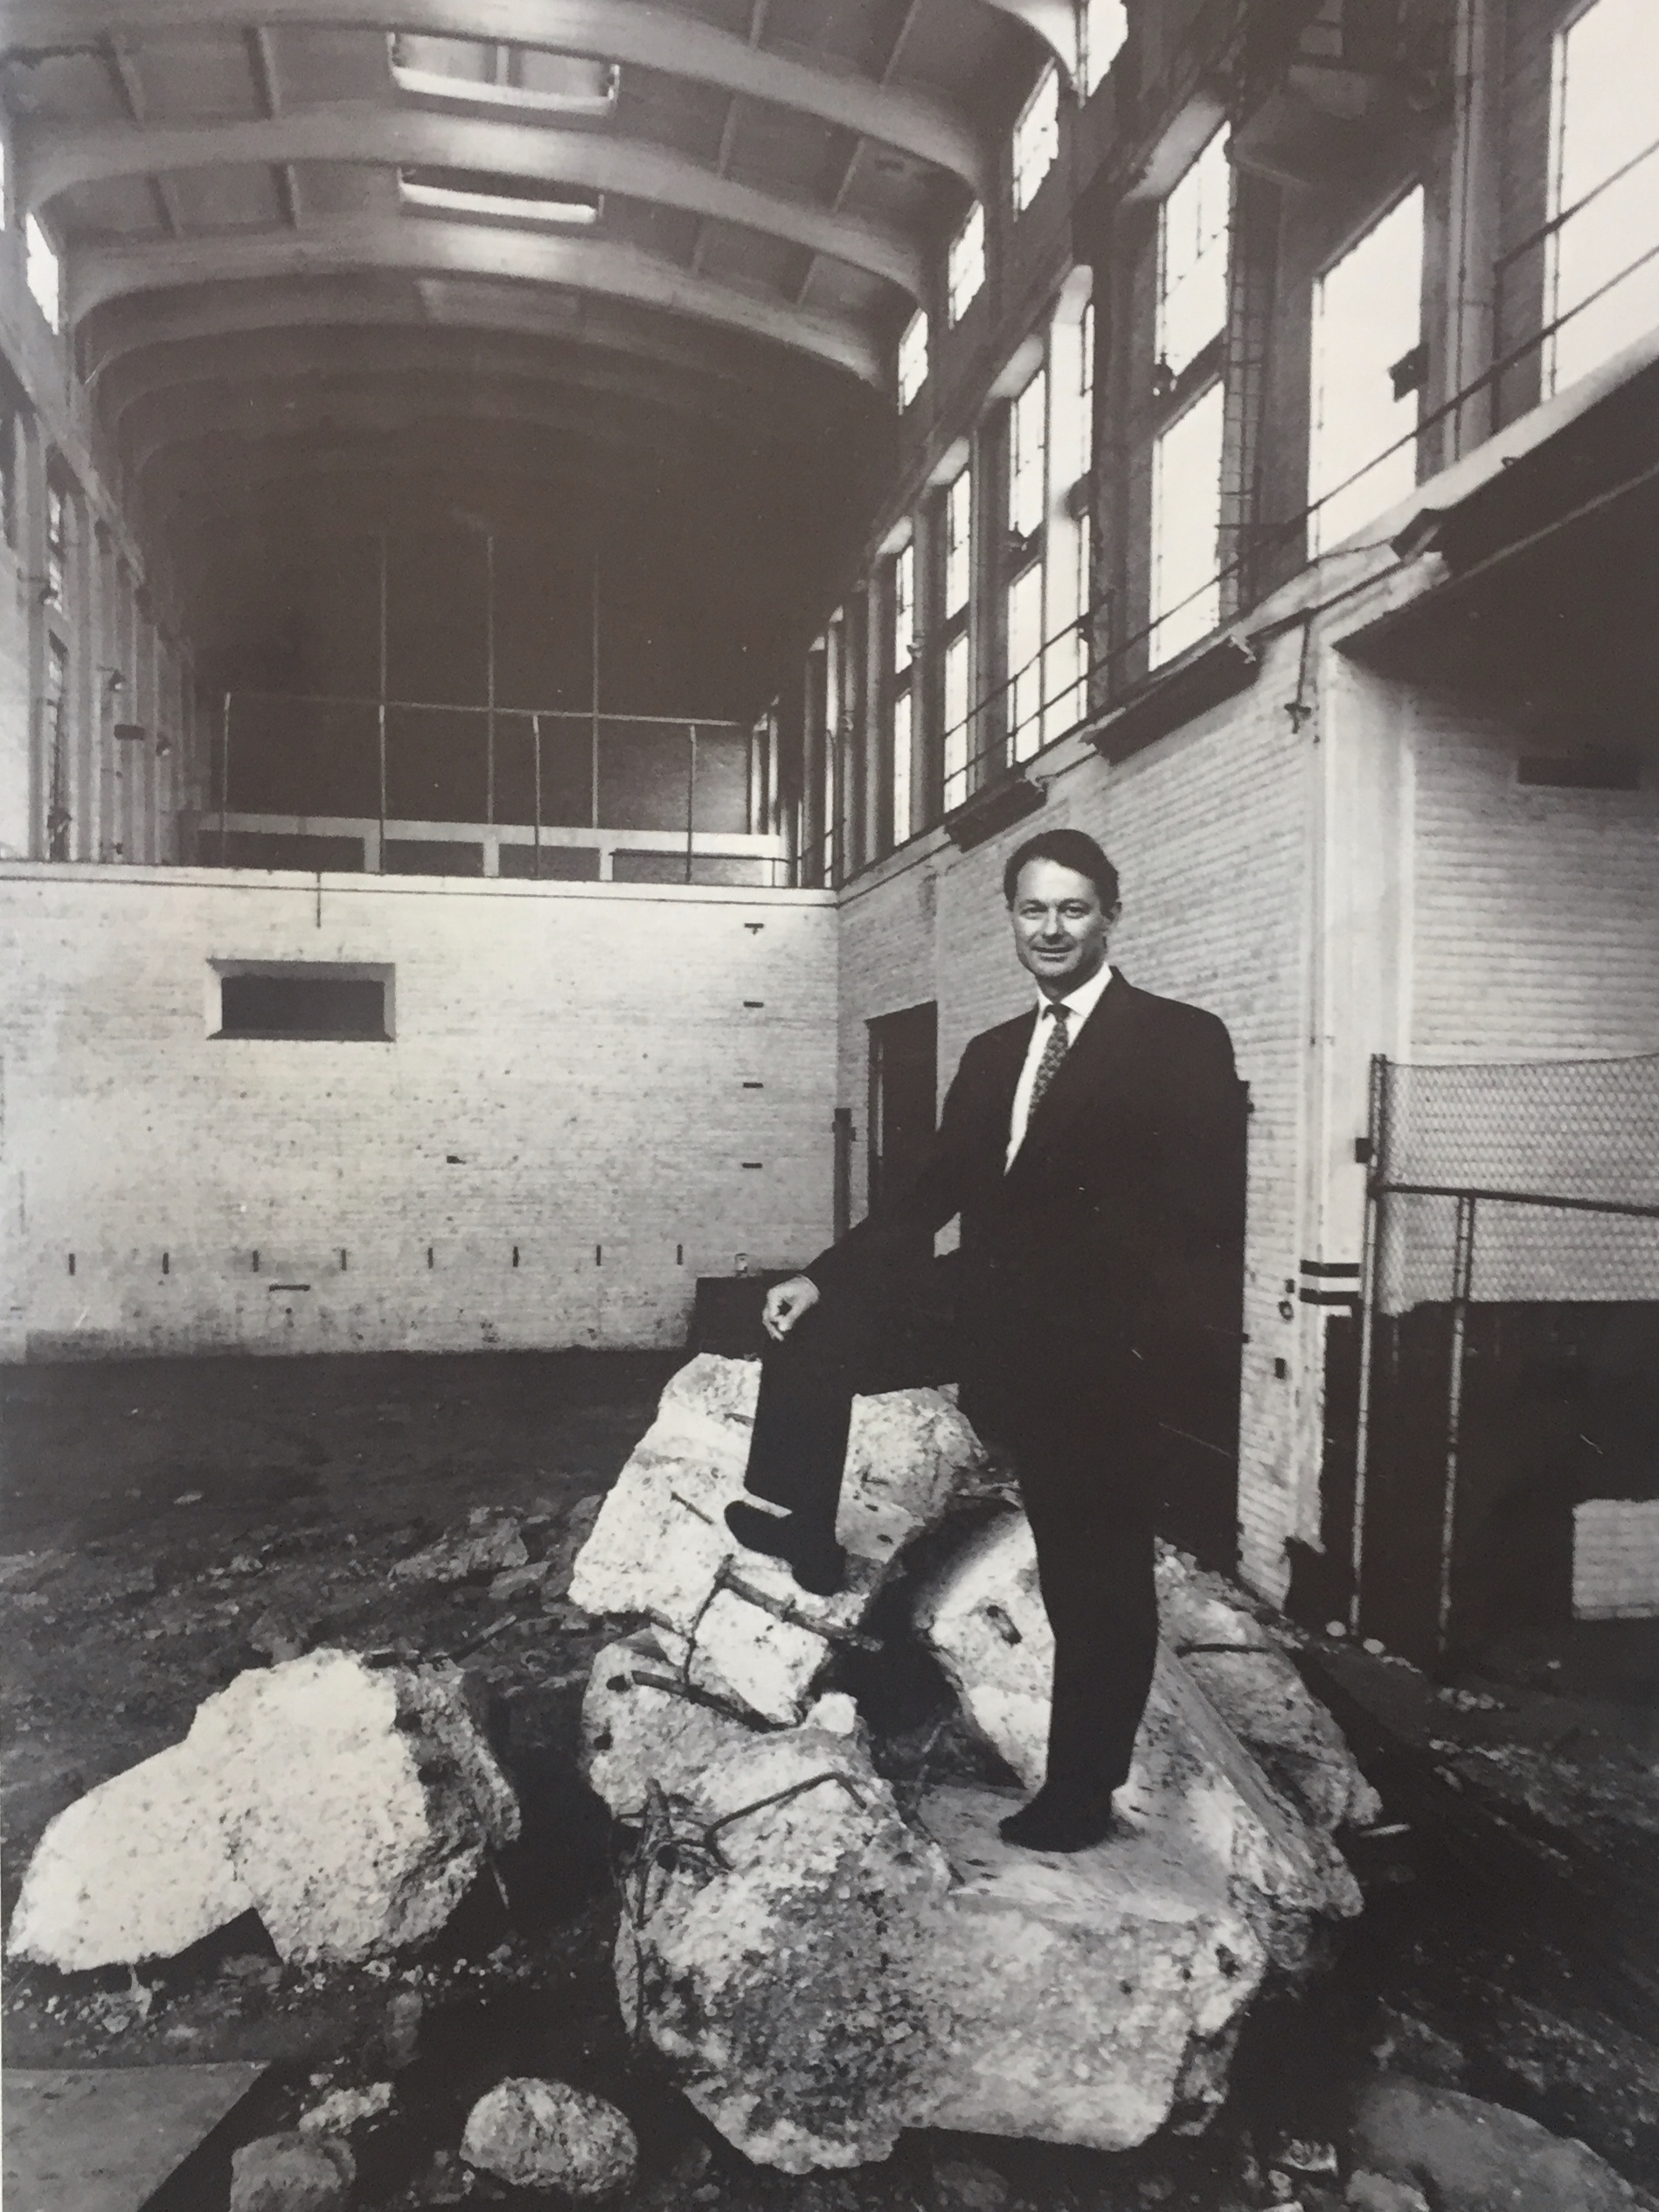 Christopher Till, then Director of Arts and Culture for the City of Johannesburg, in the shell of the soon to be developed multi-use events space - The Electric Workshop. Photo ADA Magazine